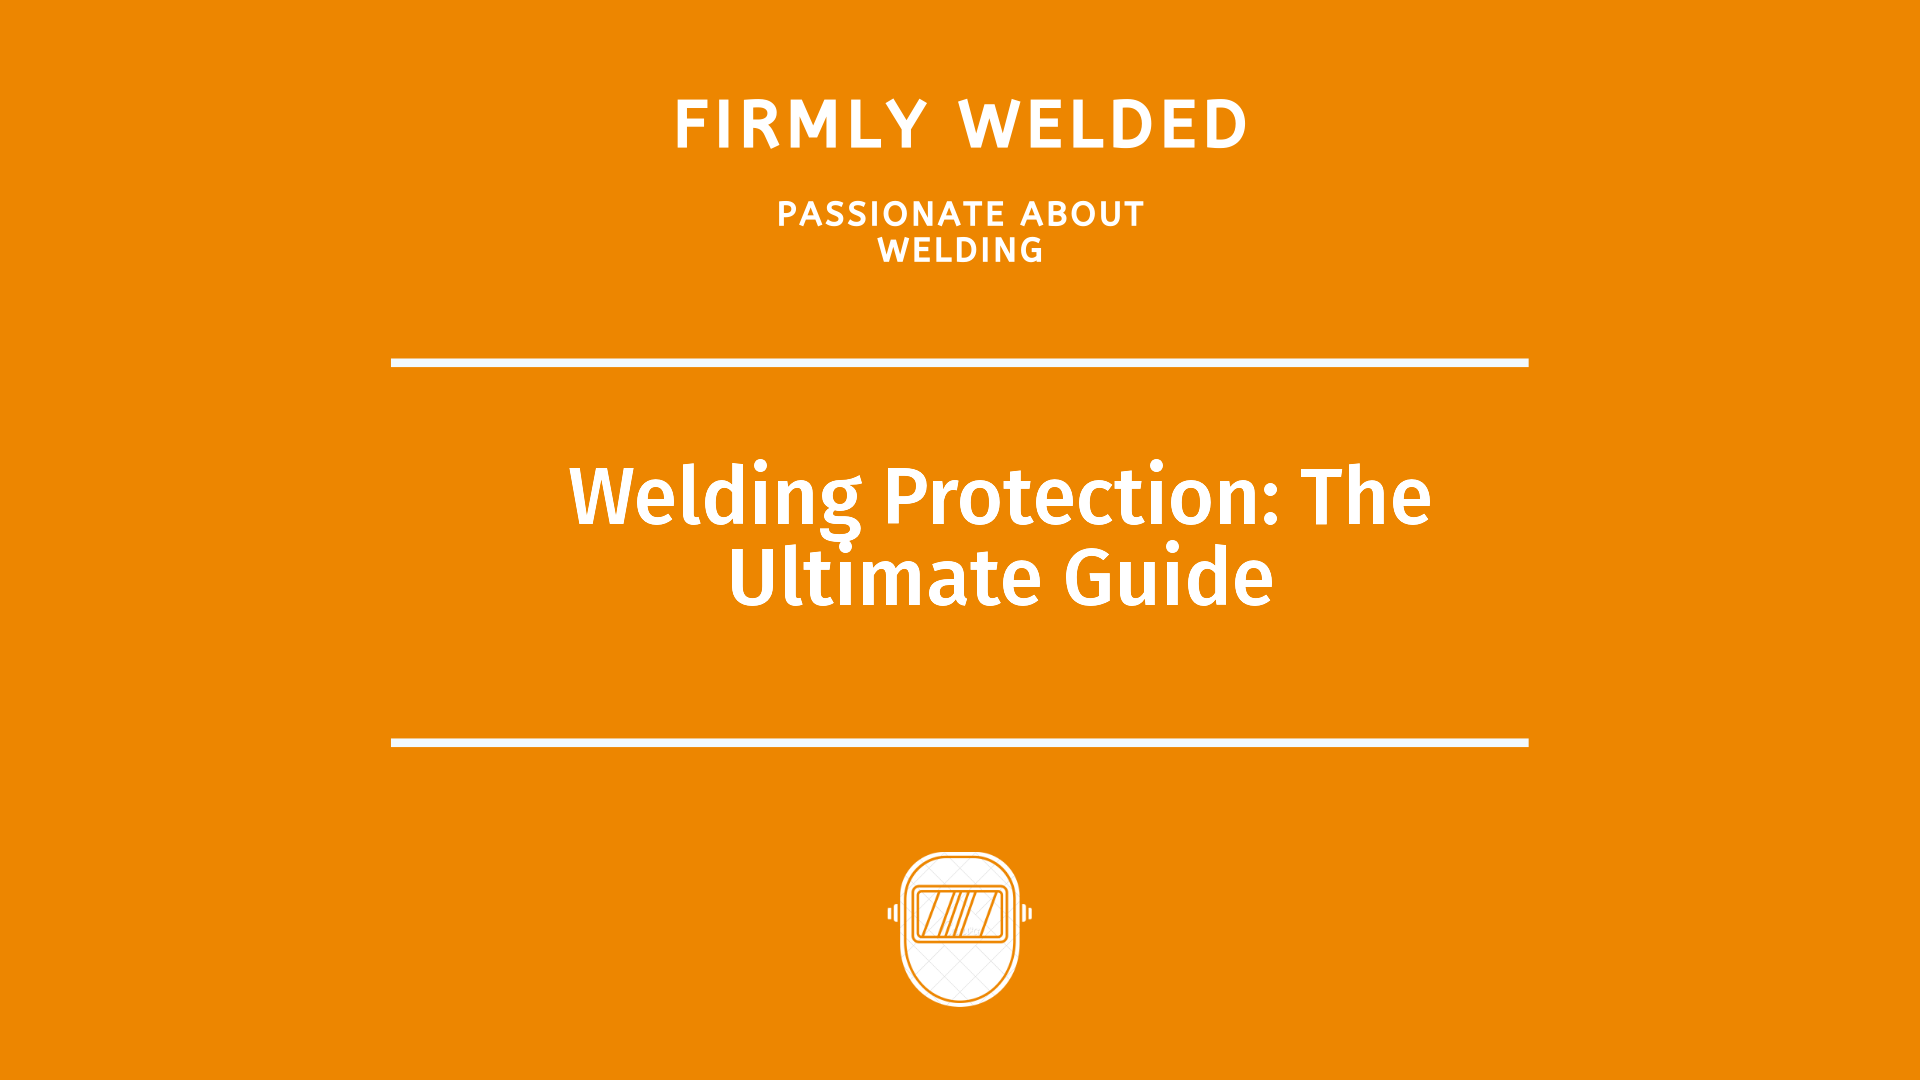 Welding Protection: The Ultimate Guide